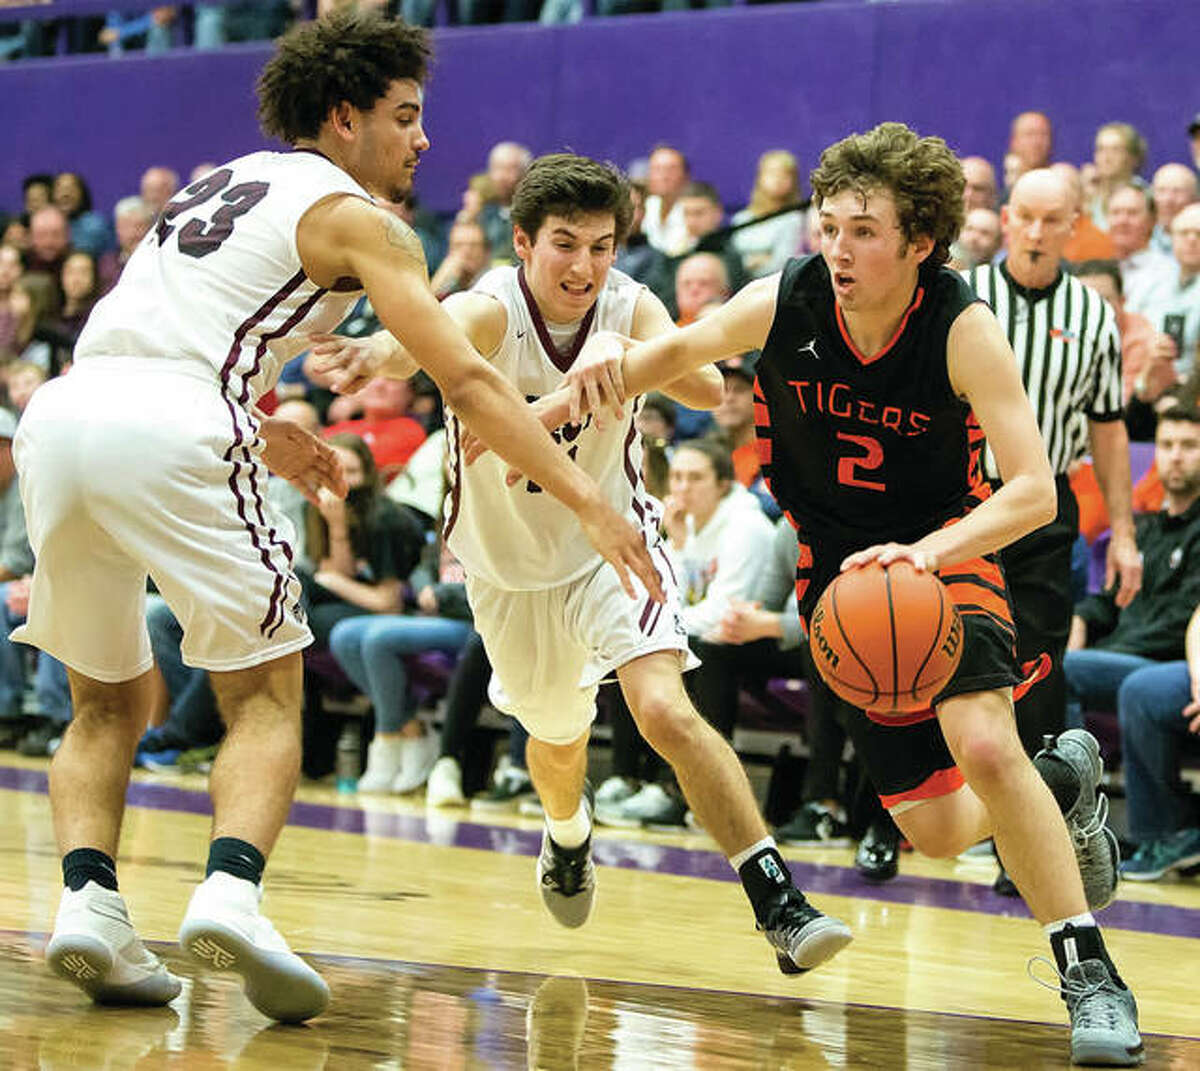 Edwardsville's Jack Marinko (right), shown driving to the basket past Belleville West's Elijah Powell (left) and Jack Lanxon during last season's Class 4A sectional semifinal at Fletcher Gym in Collinsville, is averaging 27.7 points per game in the Tigers 6-1 start.